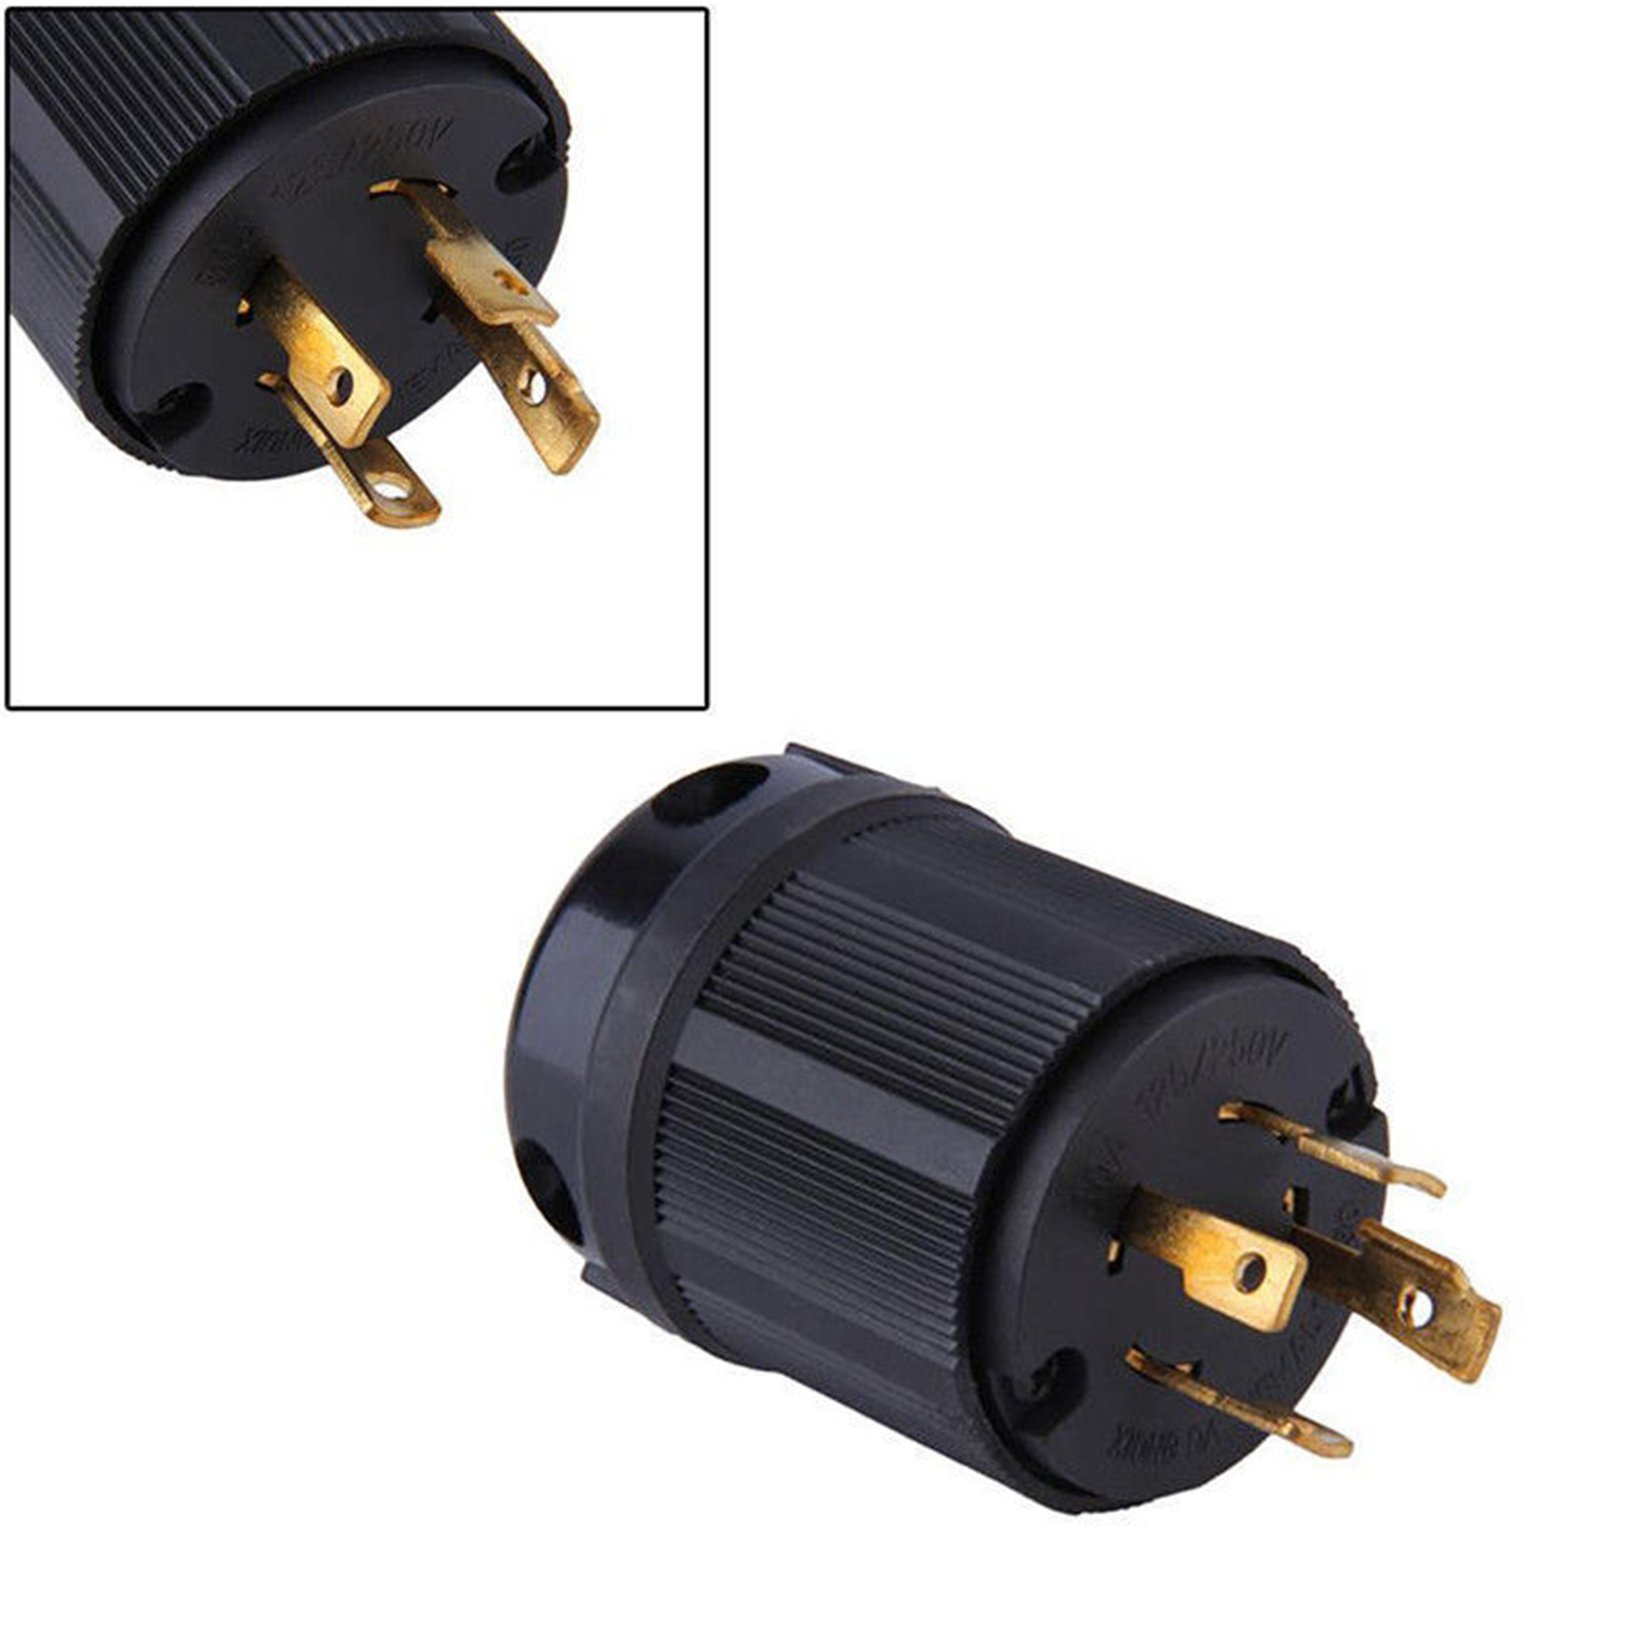 Toyofmine MALE L14-30P 220 POWER CORD END 4-PRONG TWIST LOCK GENERATOR PLUG 30A 125/250V